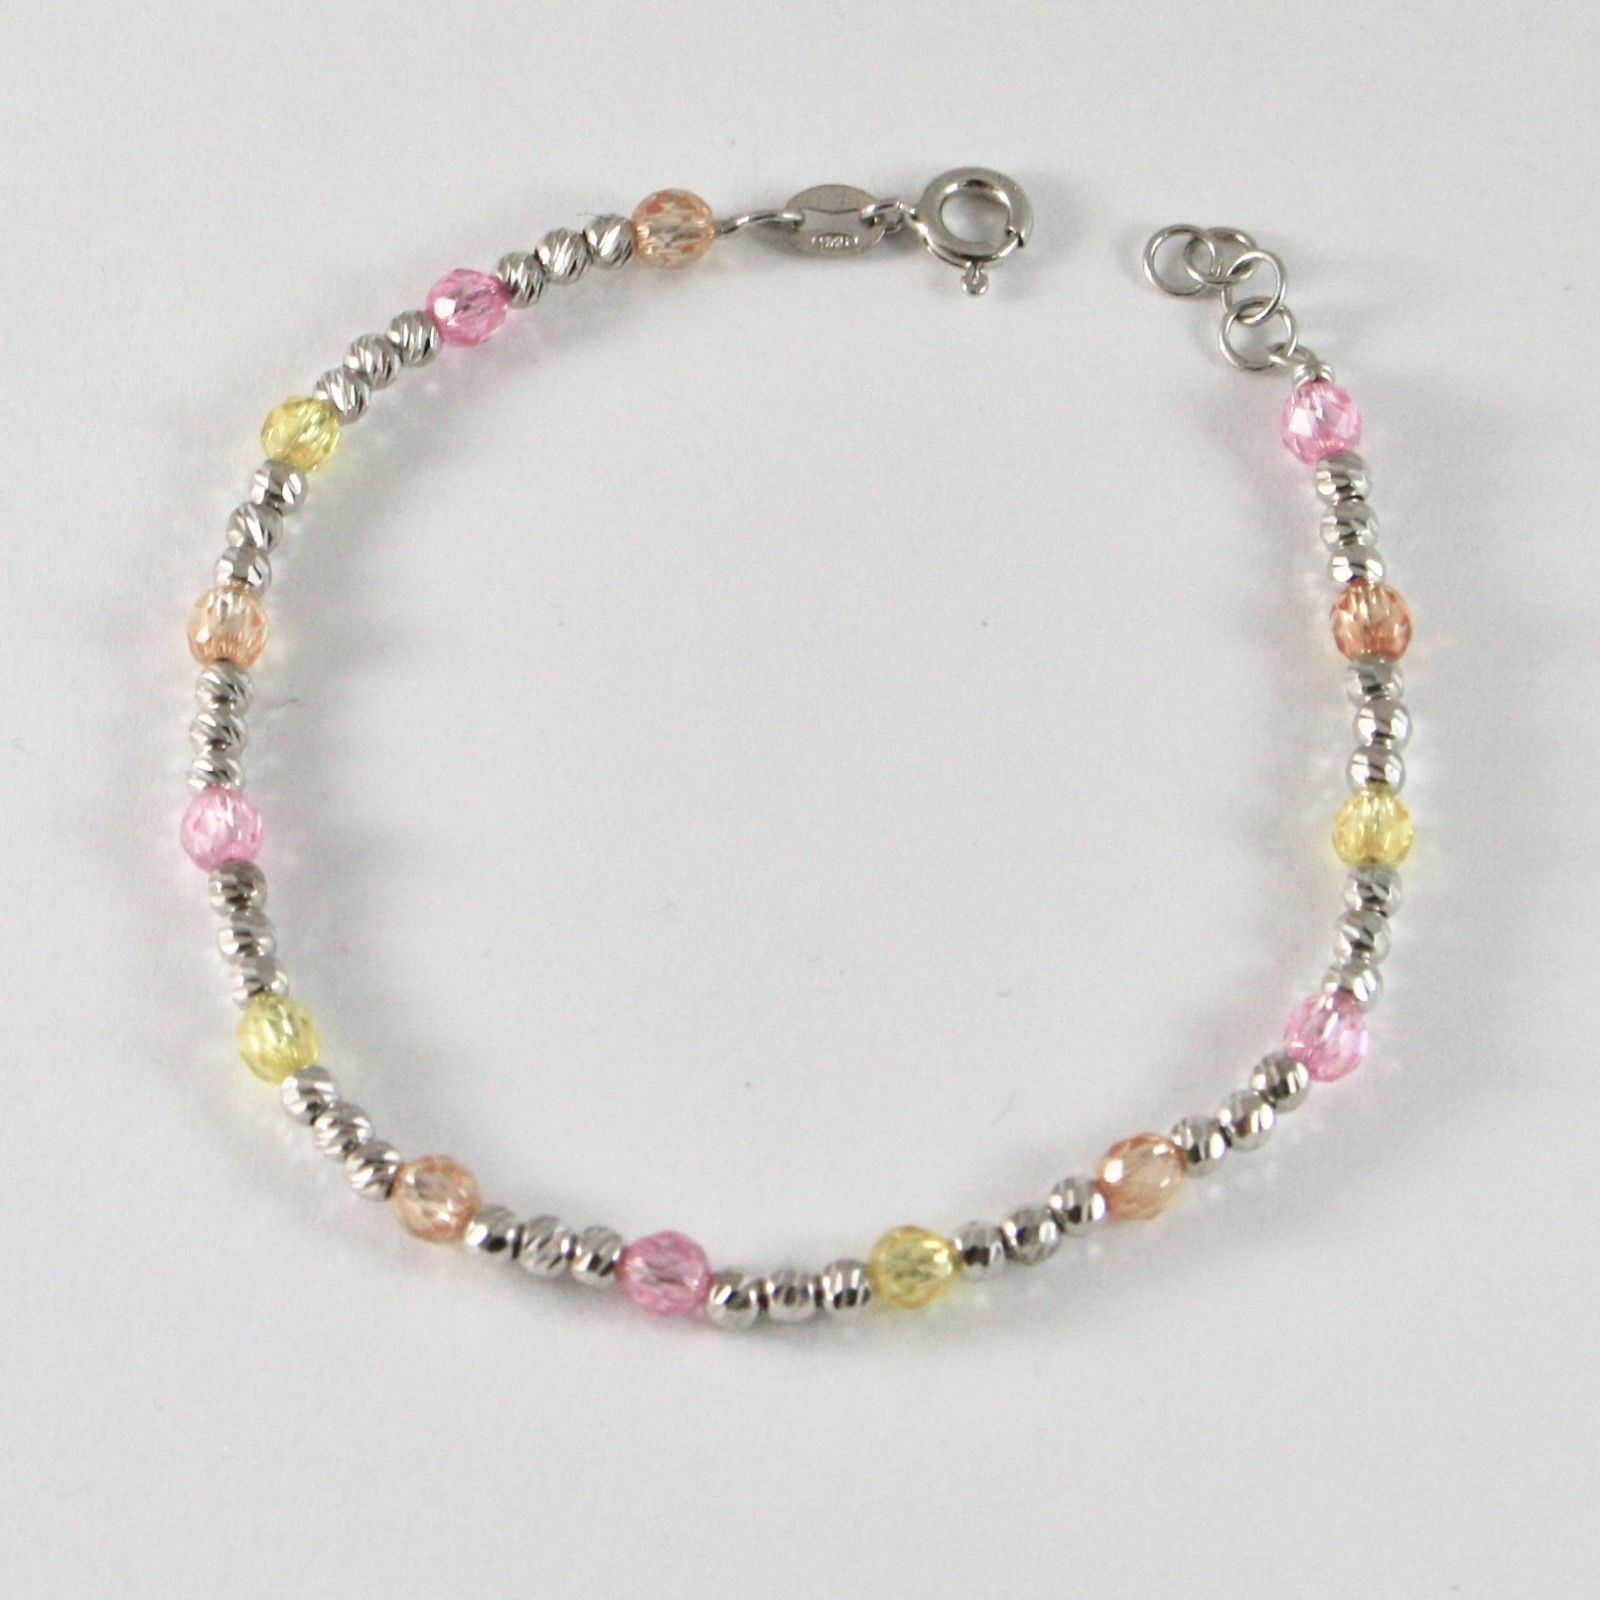 SILVER 925 BRACELET RHODIUM WITH BEADS FACETED AND ZIRCONIA CUBIC